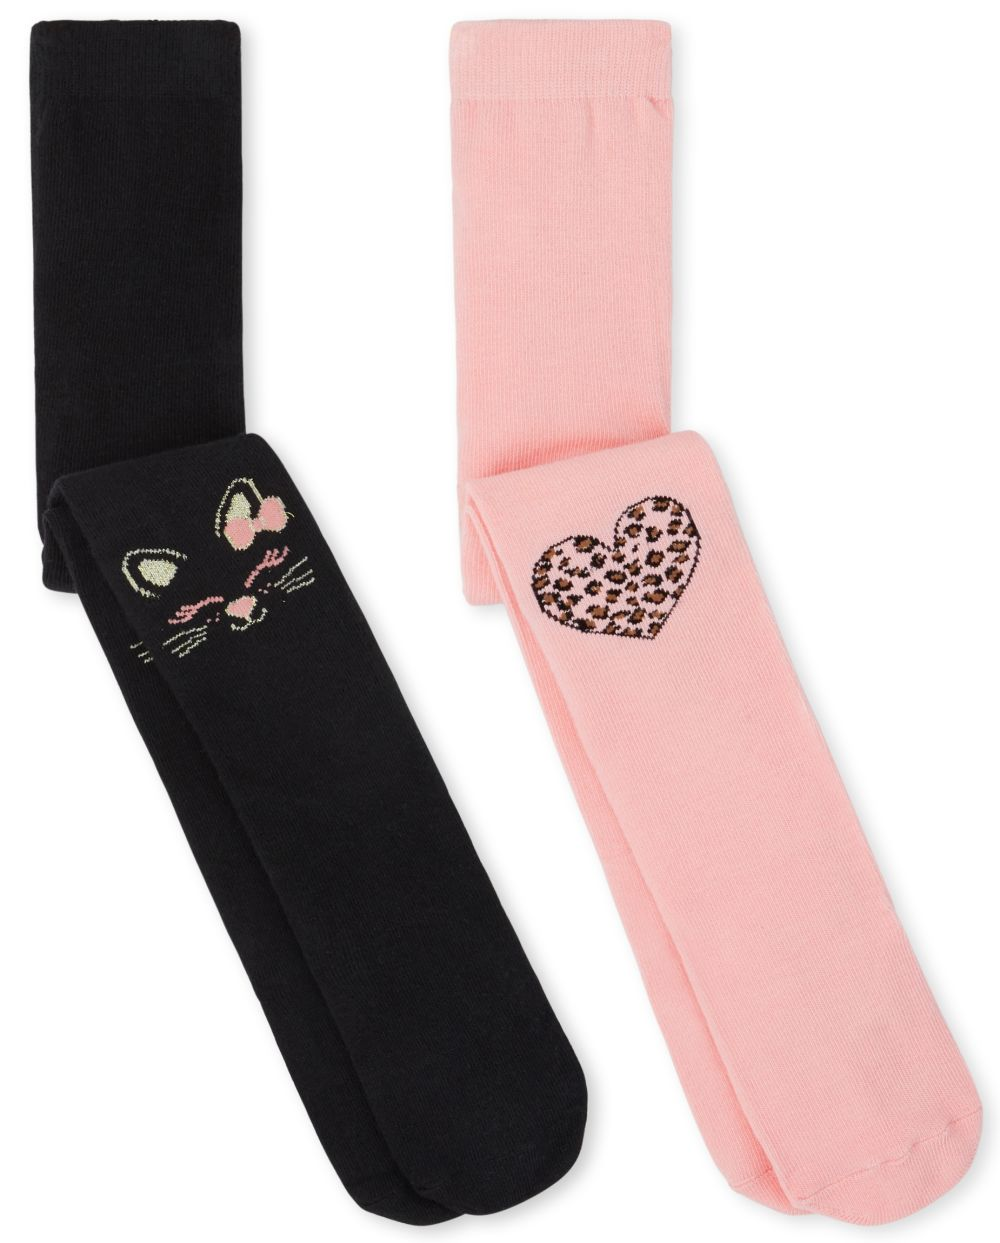 Heart Cat Tights 2-Pack - Multi